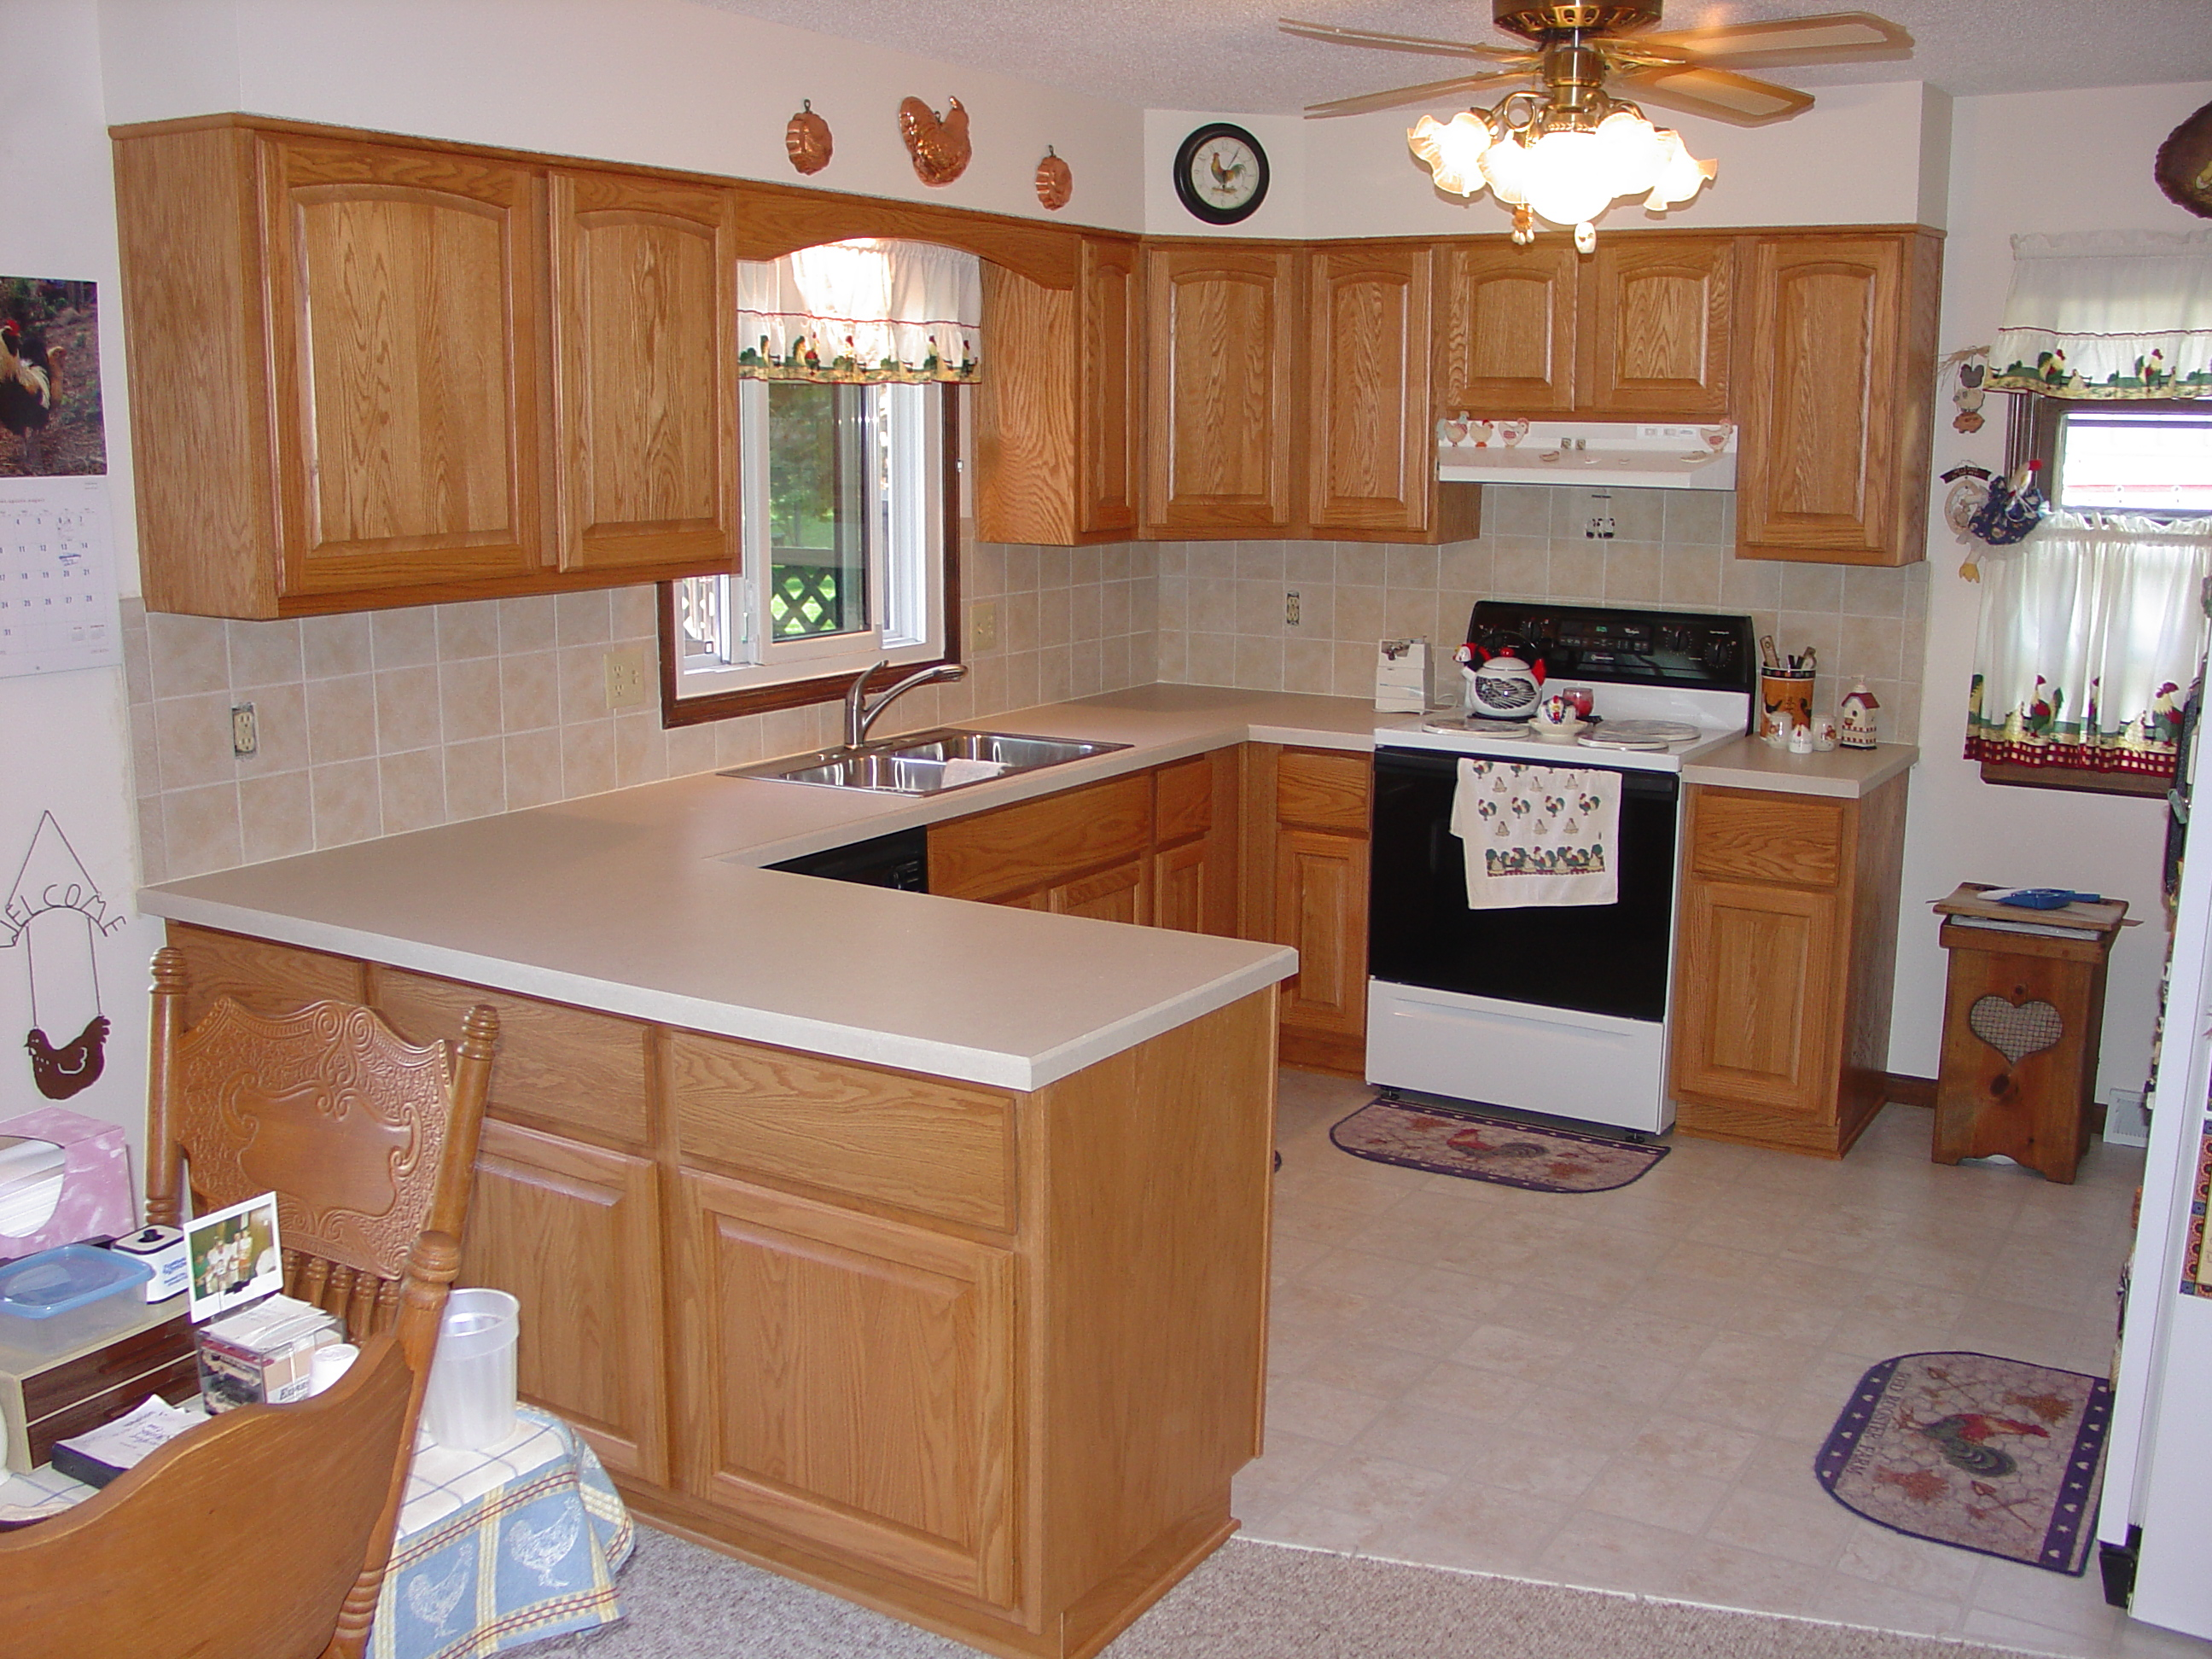 fine kitchen bathroom maryland resurface ks perfect topeka repair resurfacing surface countertops in counter refinishing shower countertop and laminate